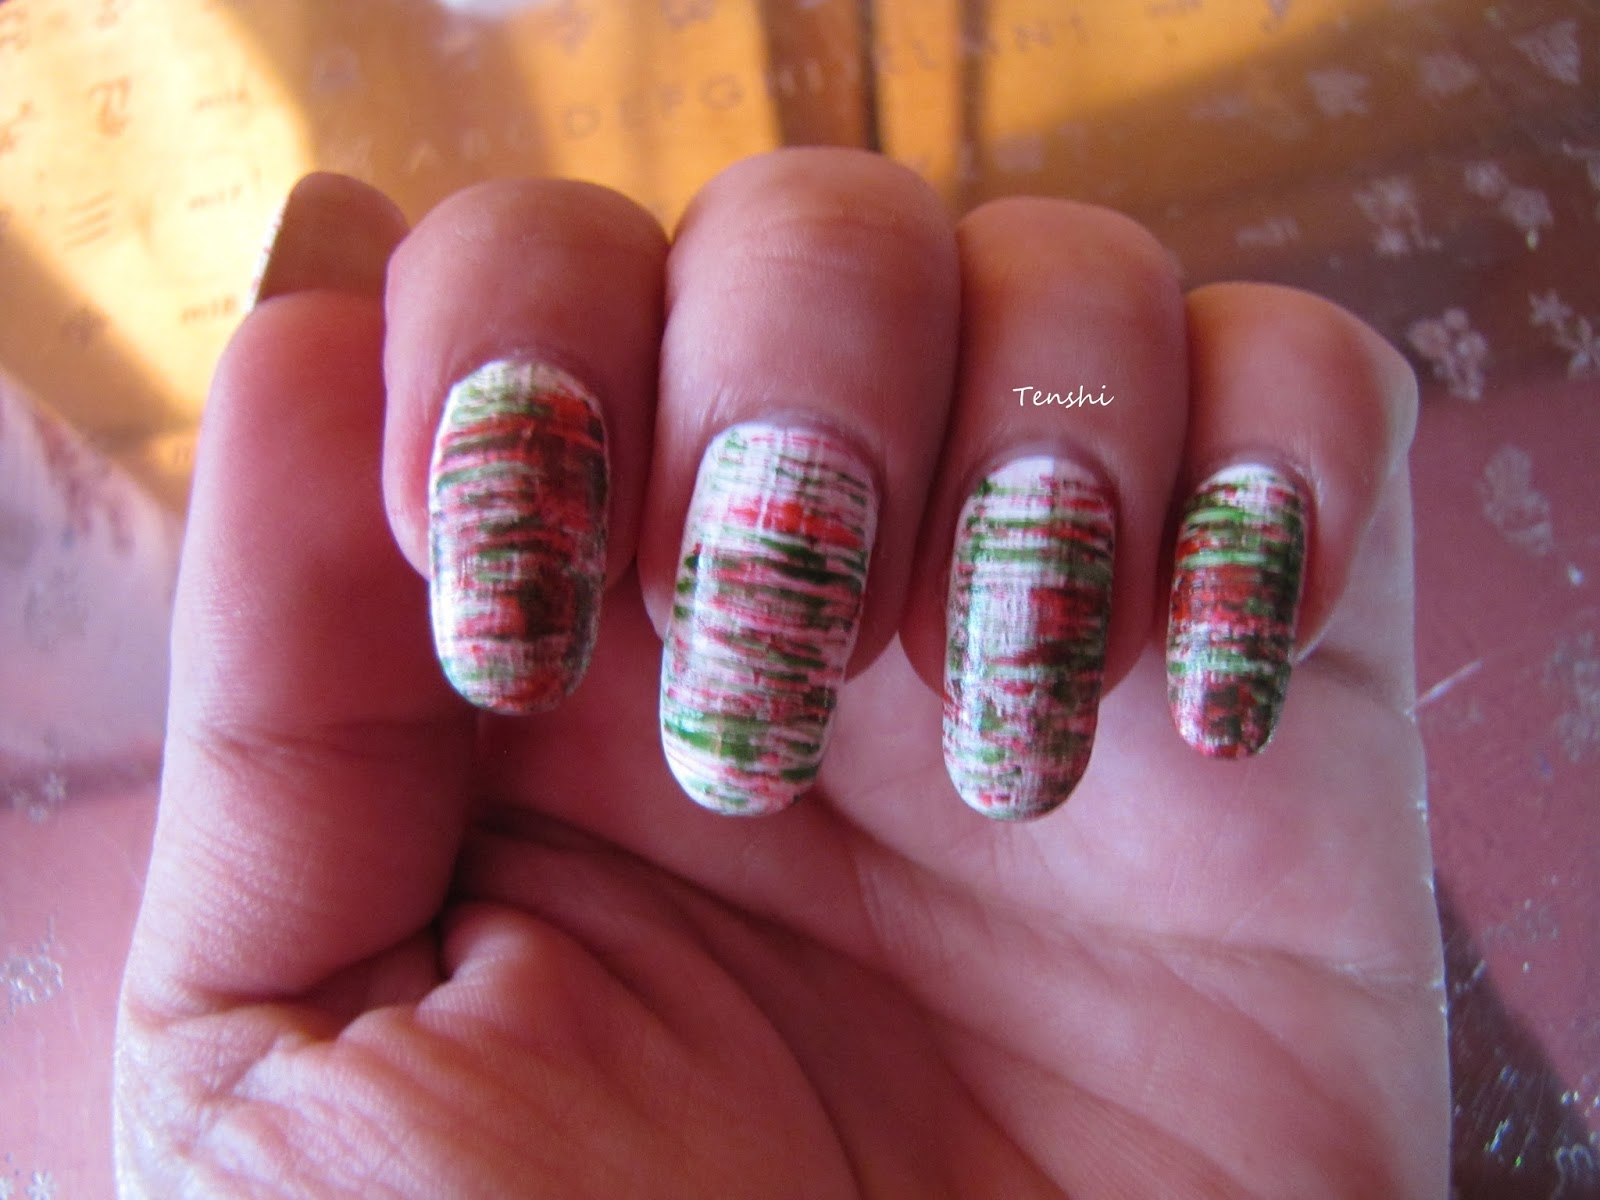 Nails by Tenshi: Mexicano abstracto